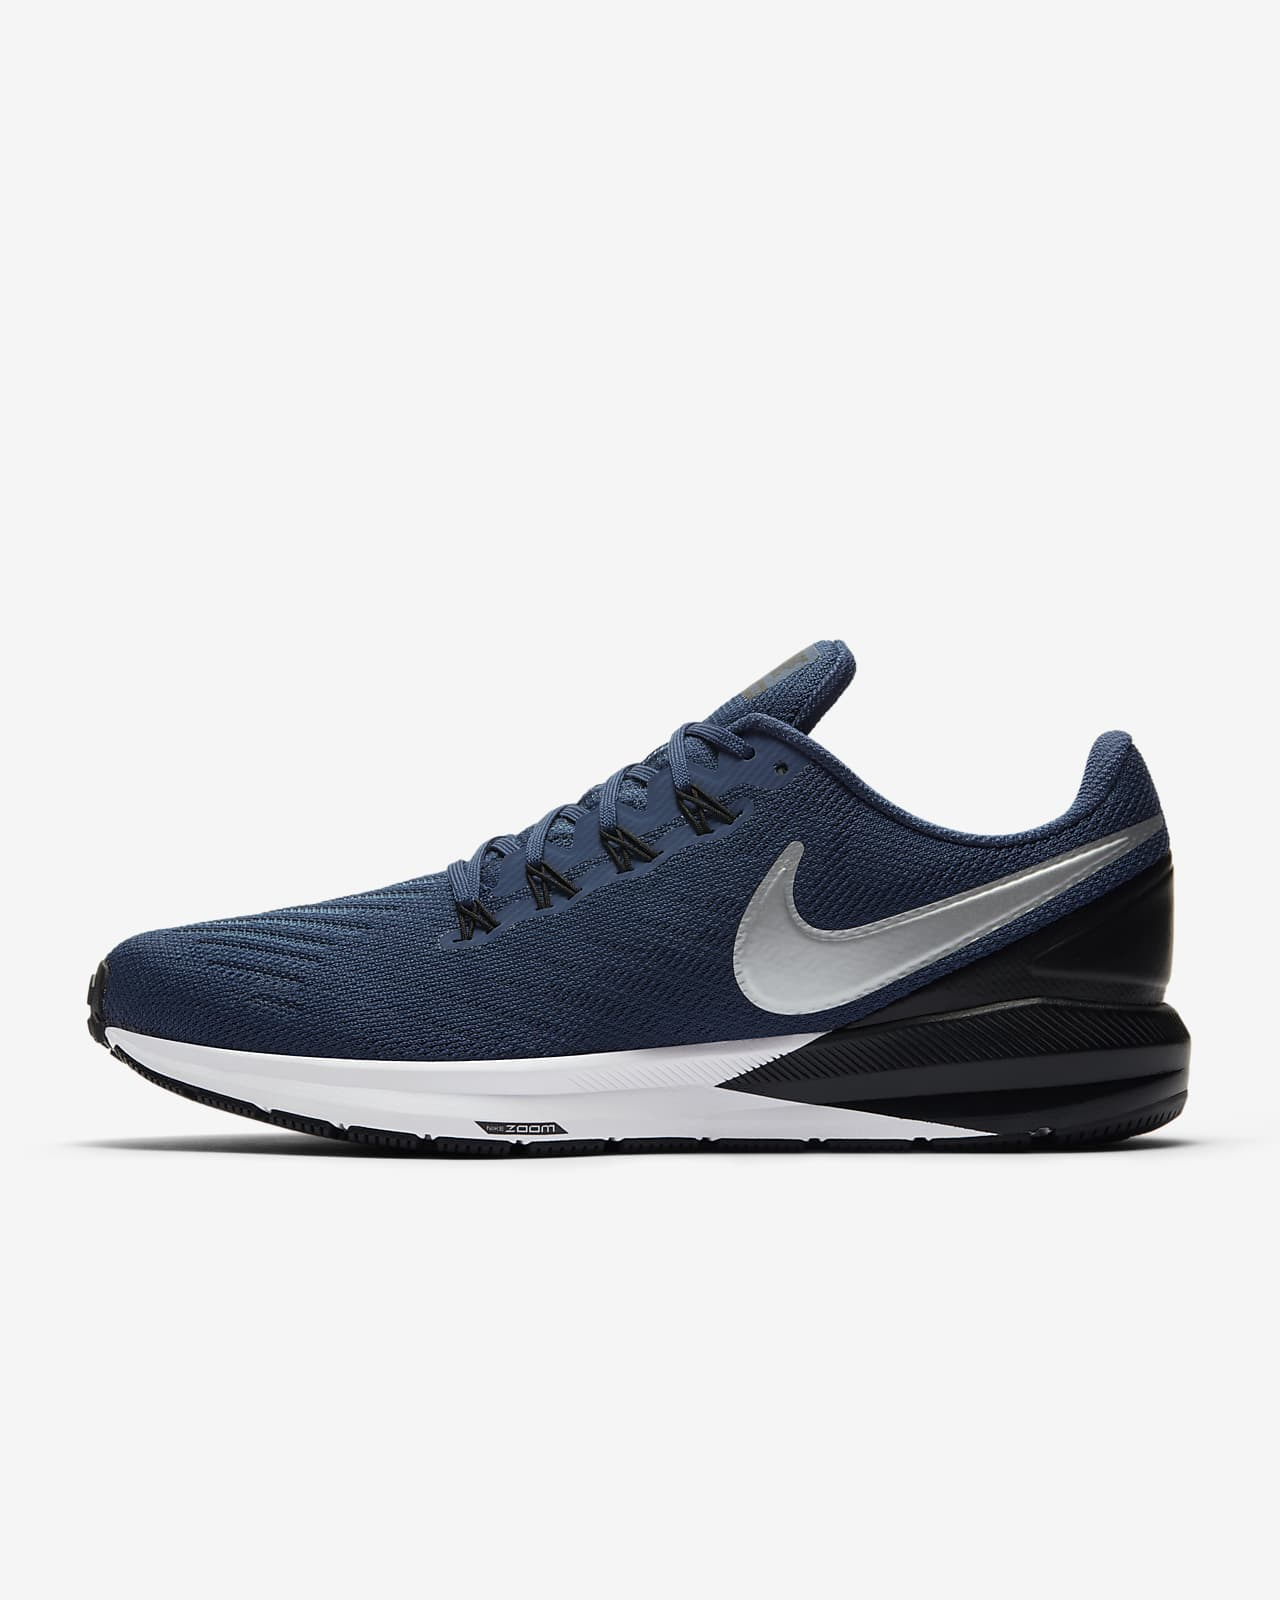 Nike Air Zoom Structure 22 Men's Road Running Shoe